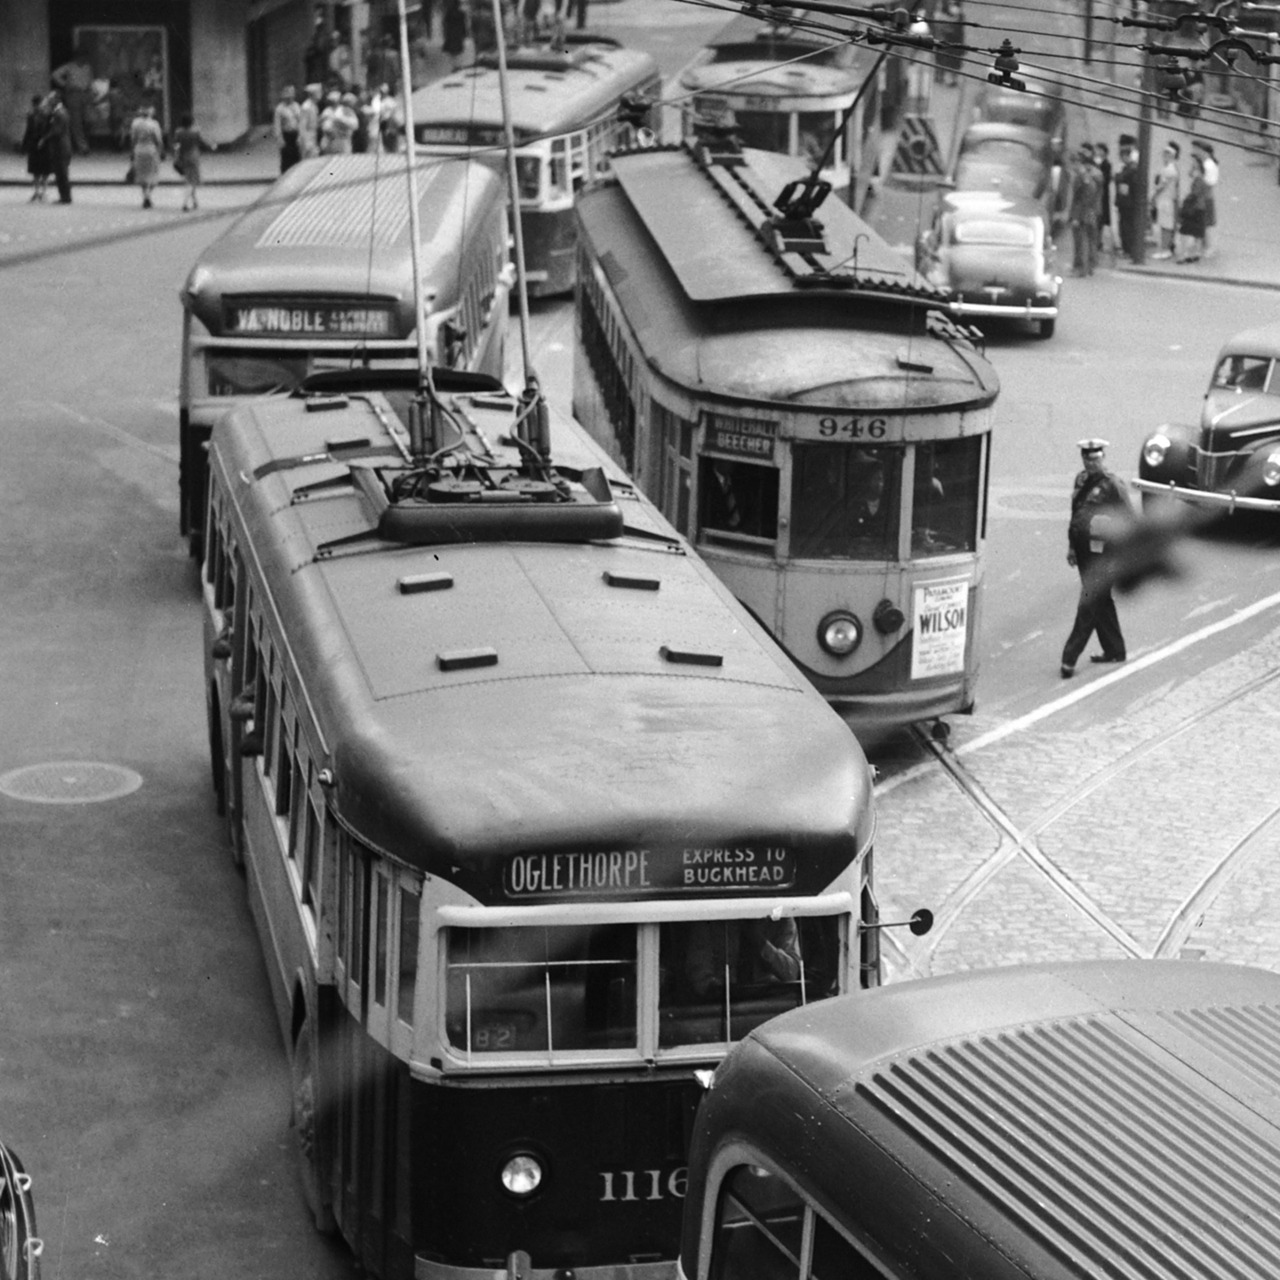 FROM THE ARCHIVES- 1945 view of trackless trolleys making their way down Peachtree Street.   Browse and order prints from our collection.